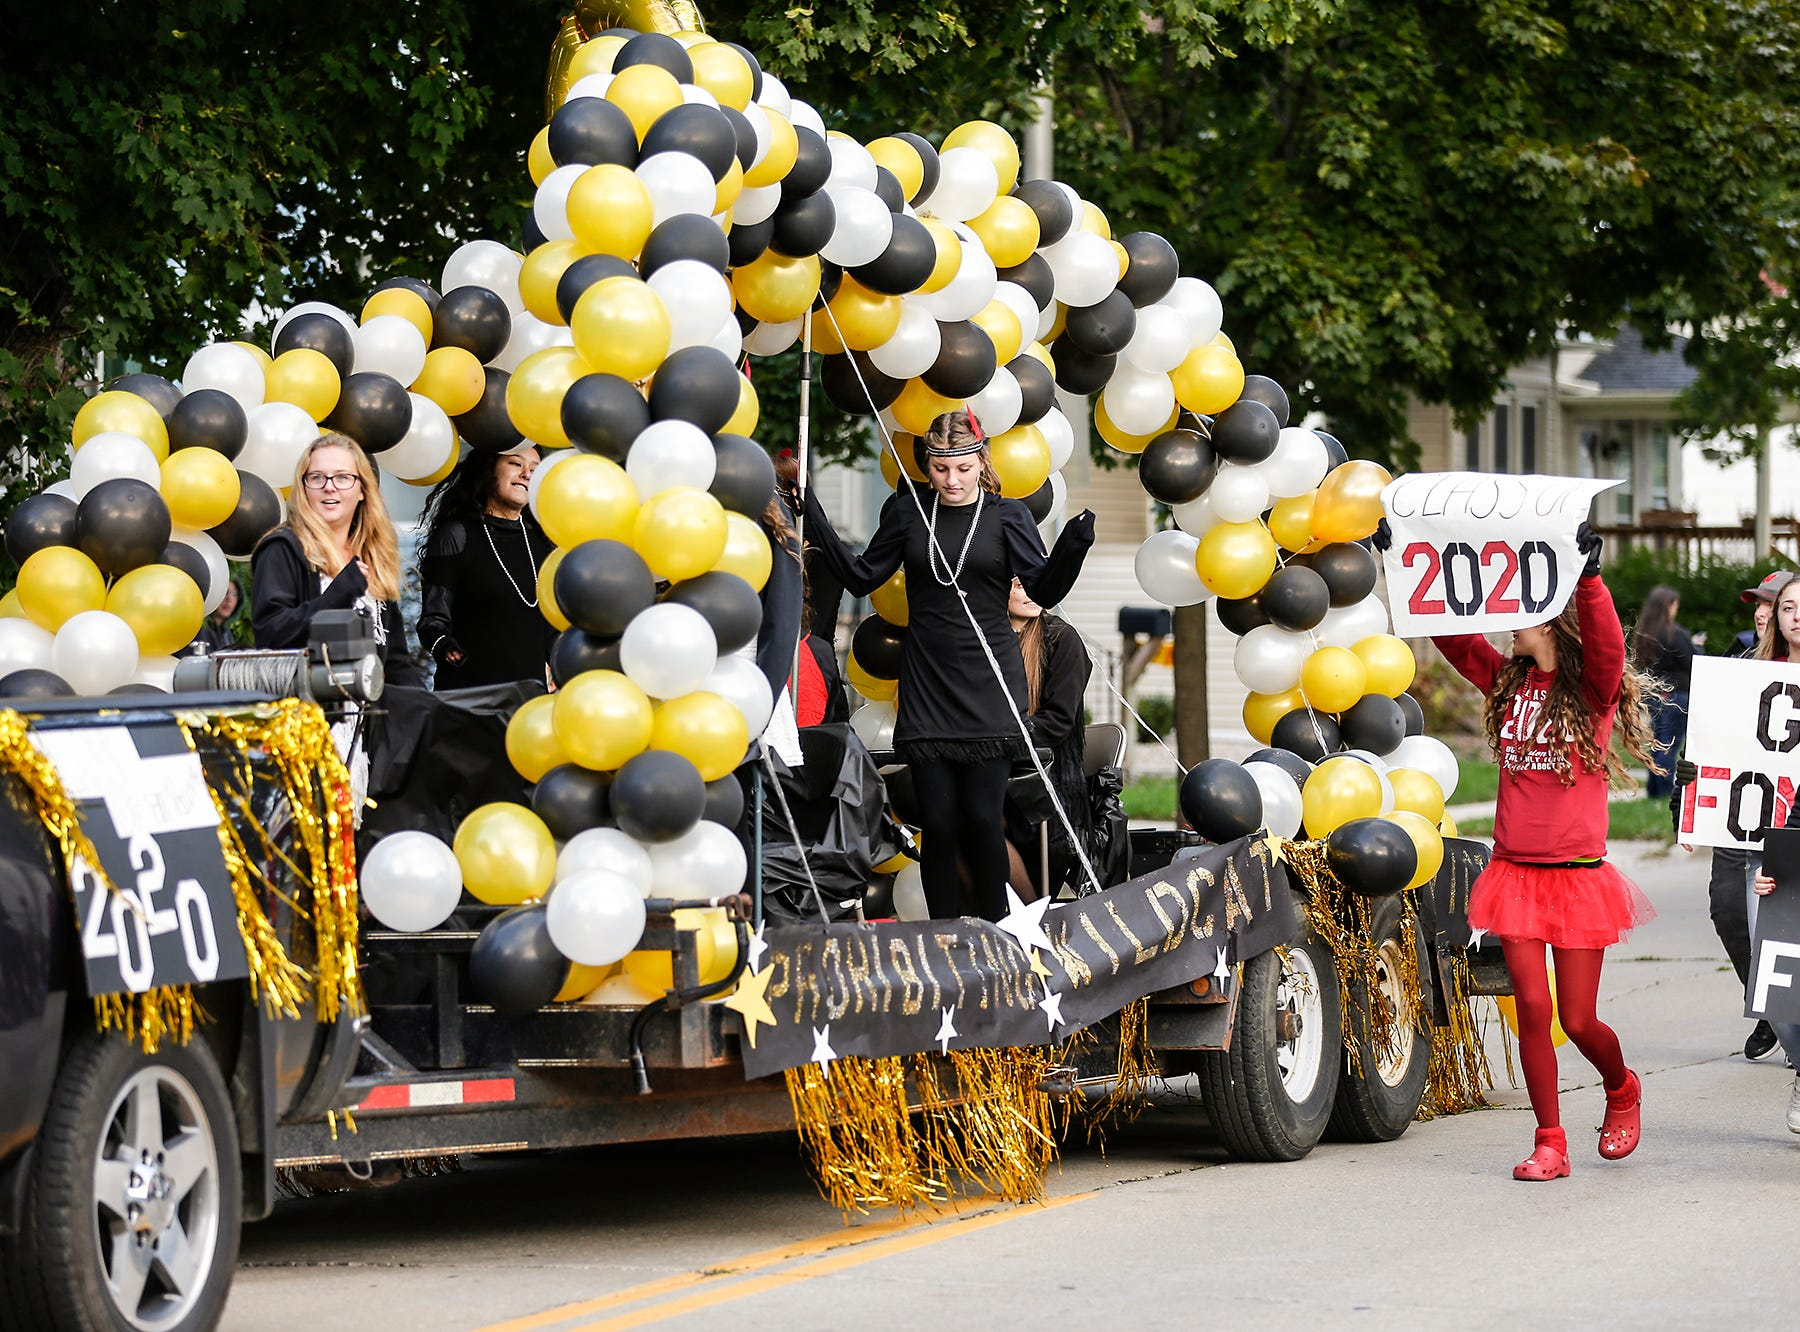 The Fond du Lac class of 2020 designed their float to have a 1920s theme for their football homecoming parade Friday, Sept. 28, 2018, which went down portions of Martin Avenue and Ninth Street in Fond du Lac, Wisconsin.